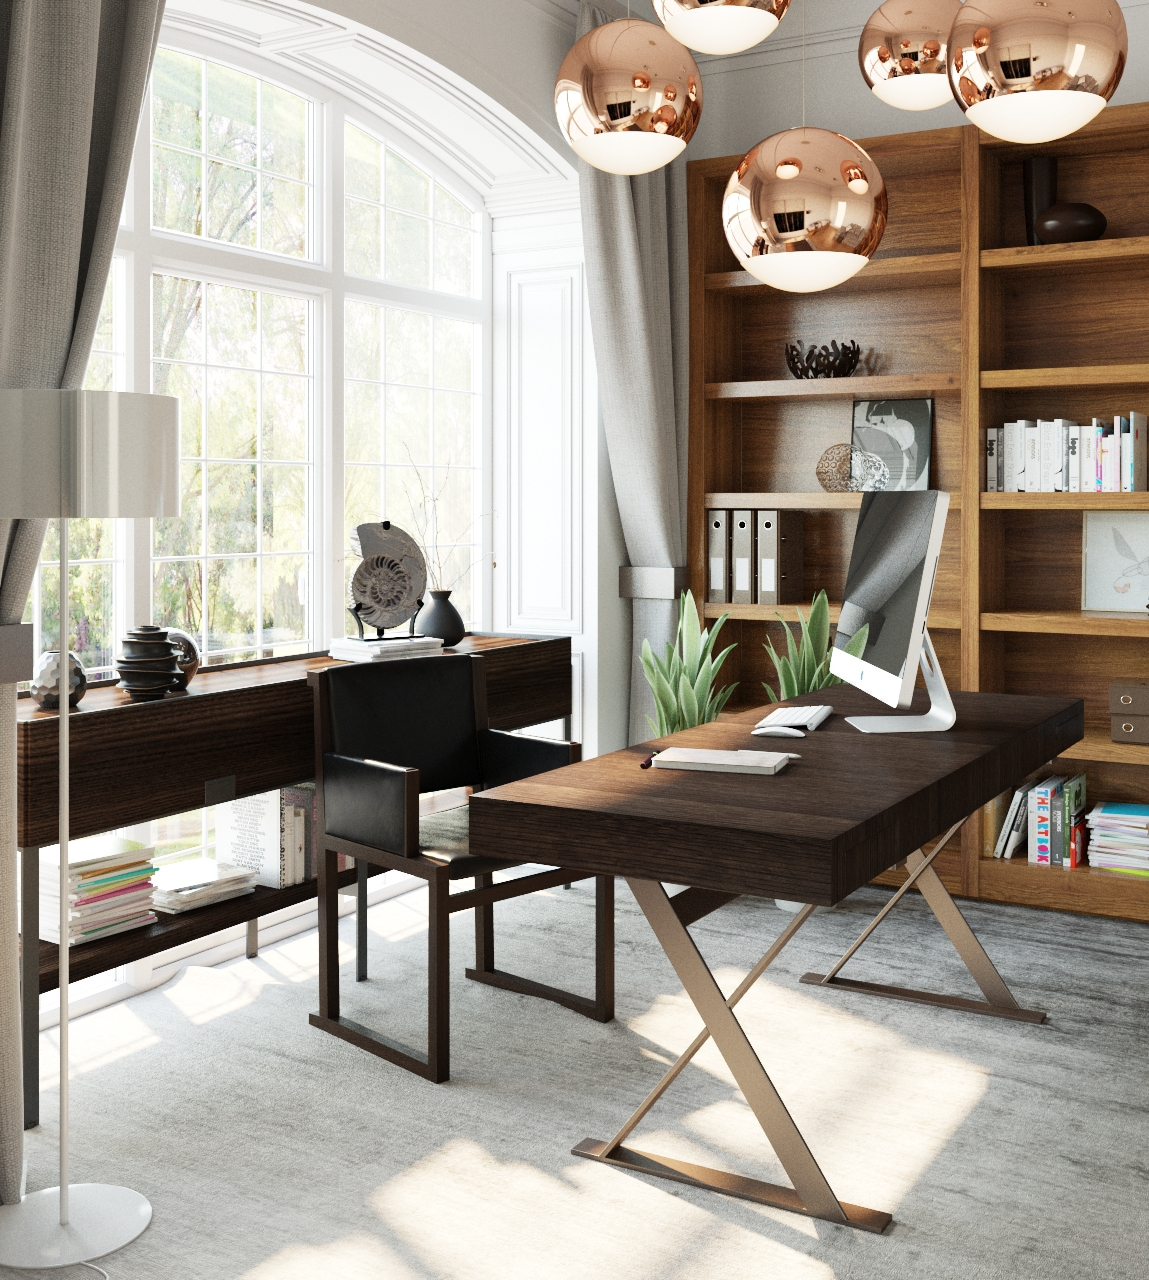 Home Design Ideas: 35 Modern Home Office Design Ideas